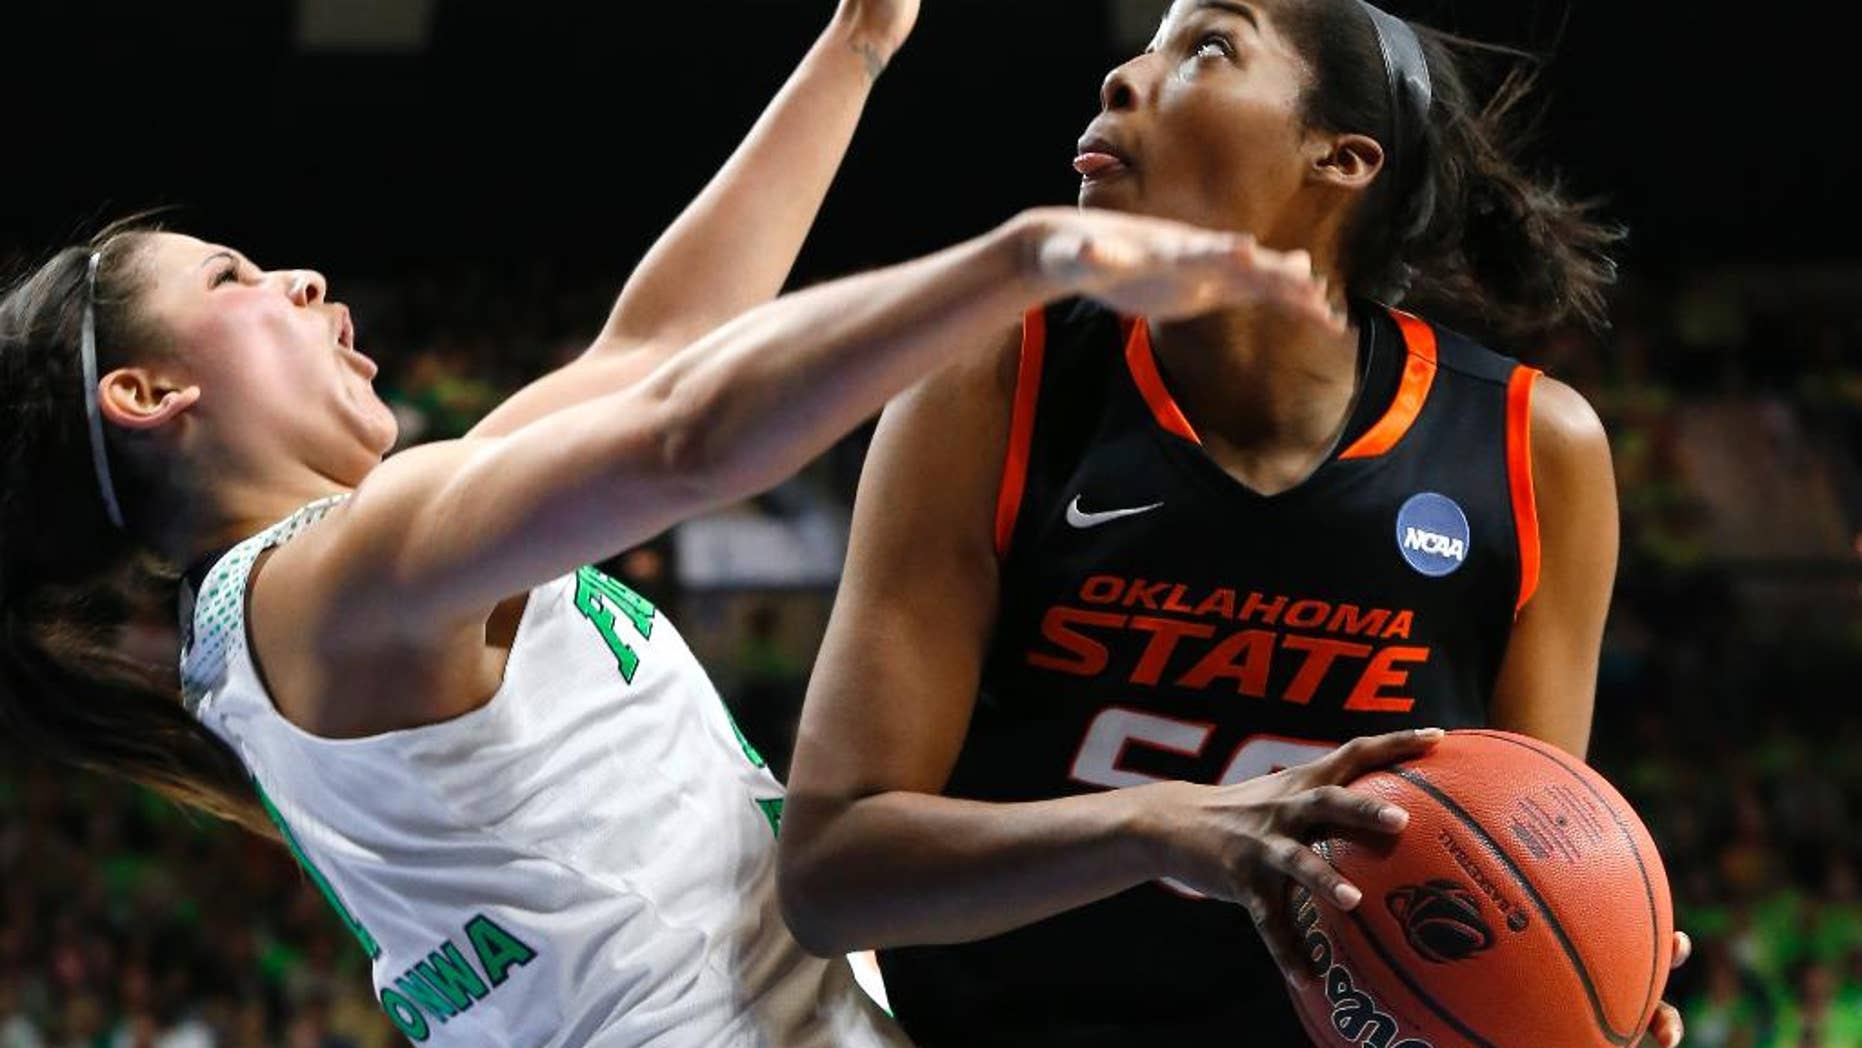 Oklahoma State center LaShawn Jones (55) drives against Notre Dame forward Natalie Achonwa (11) during the second half of of a regional semifinal in the NCAA college basketball tournament at the Purcell Pavilion in South Bend, Ind., Saturday, March 29, 2014. (AP Photo/Paul Sancya)